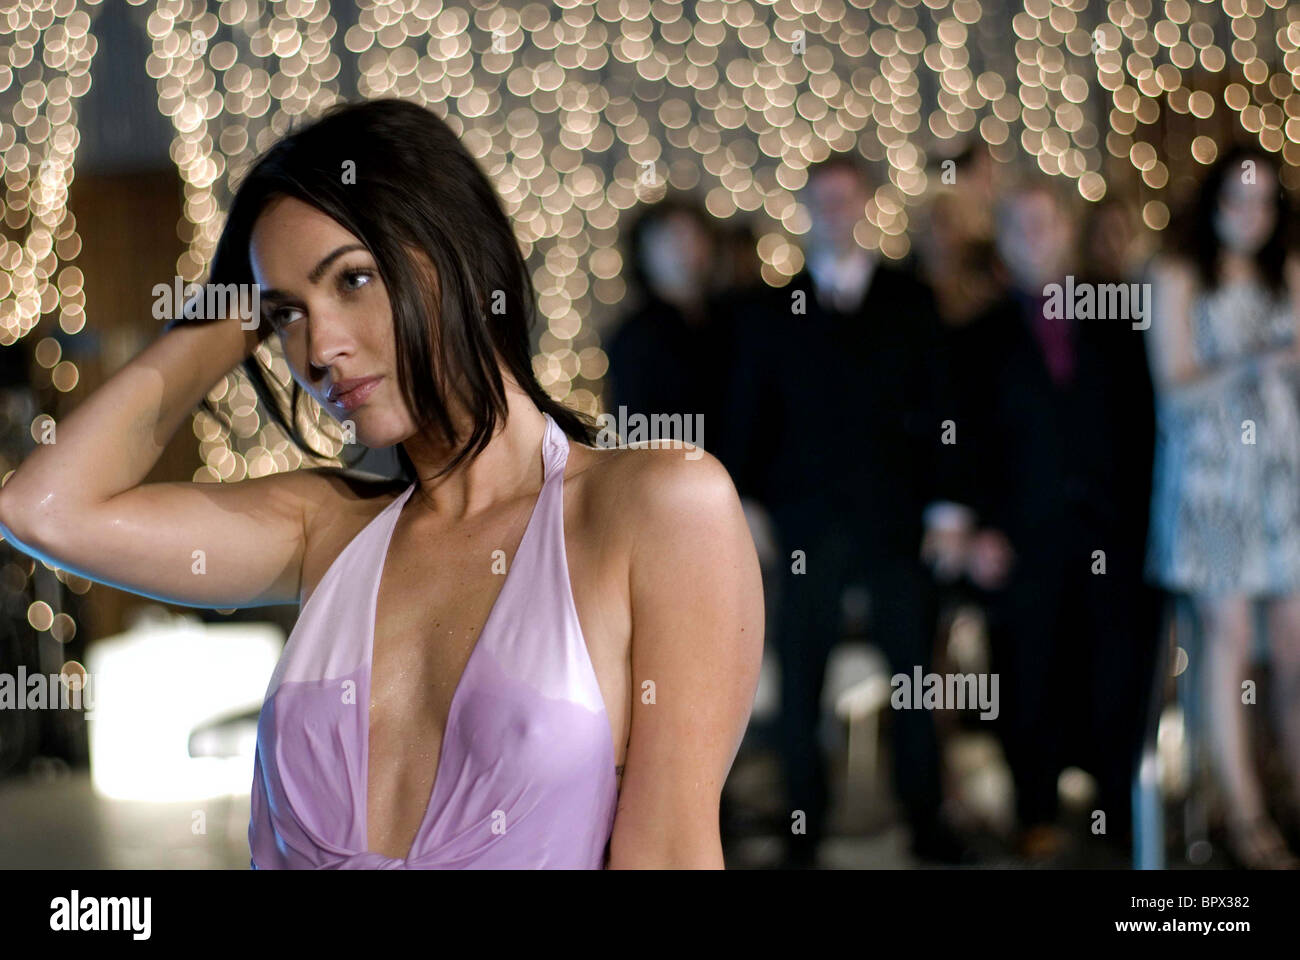 MEGAN FOX HOW TO LOSE FRIENDS & ALIENATE PEOPLE (2008) - Stock Image